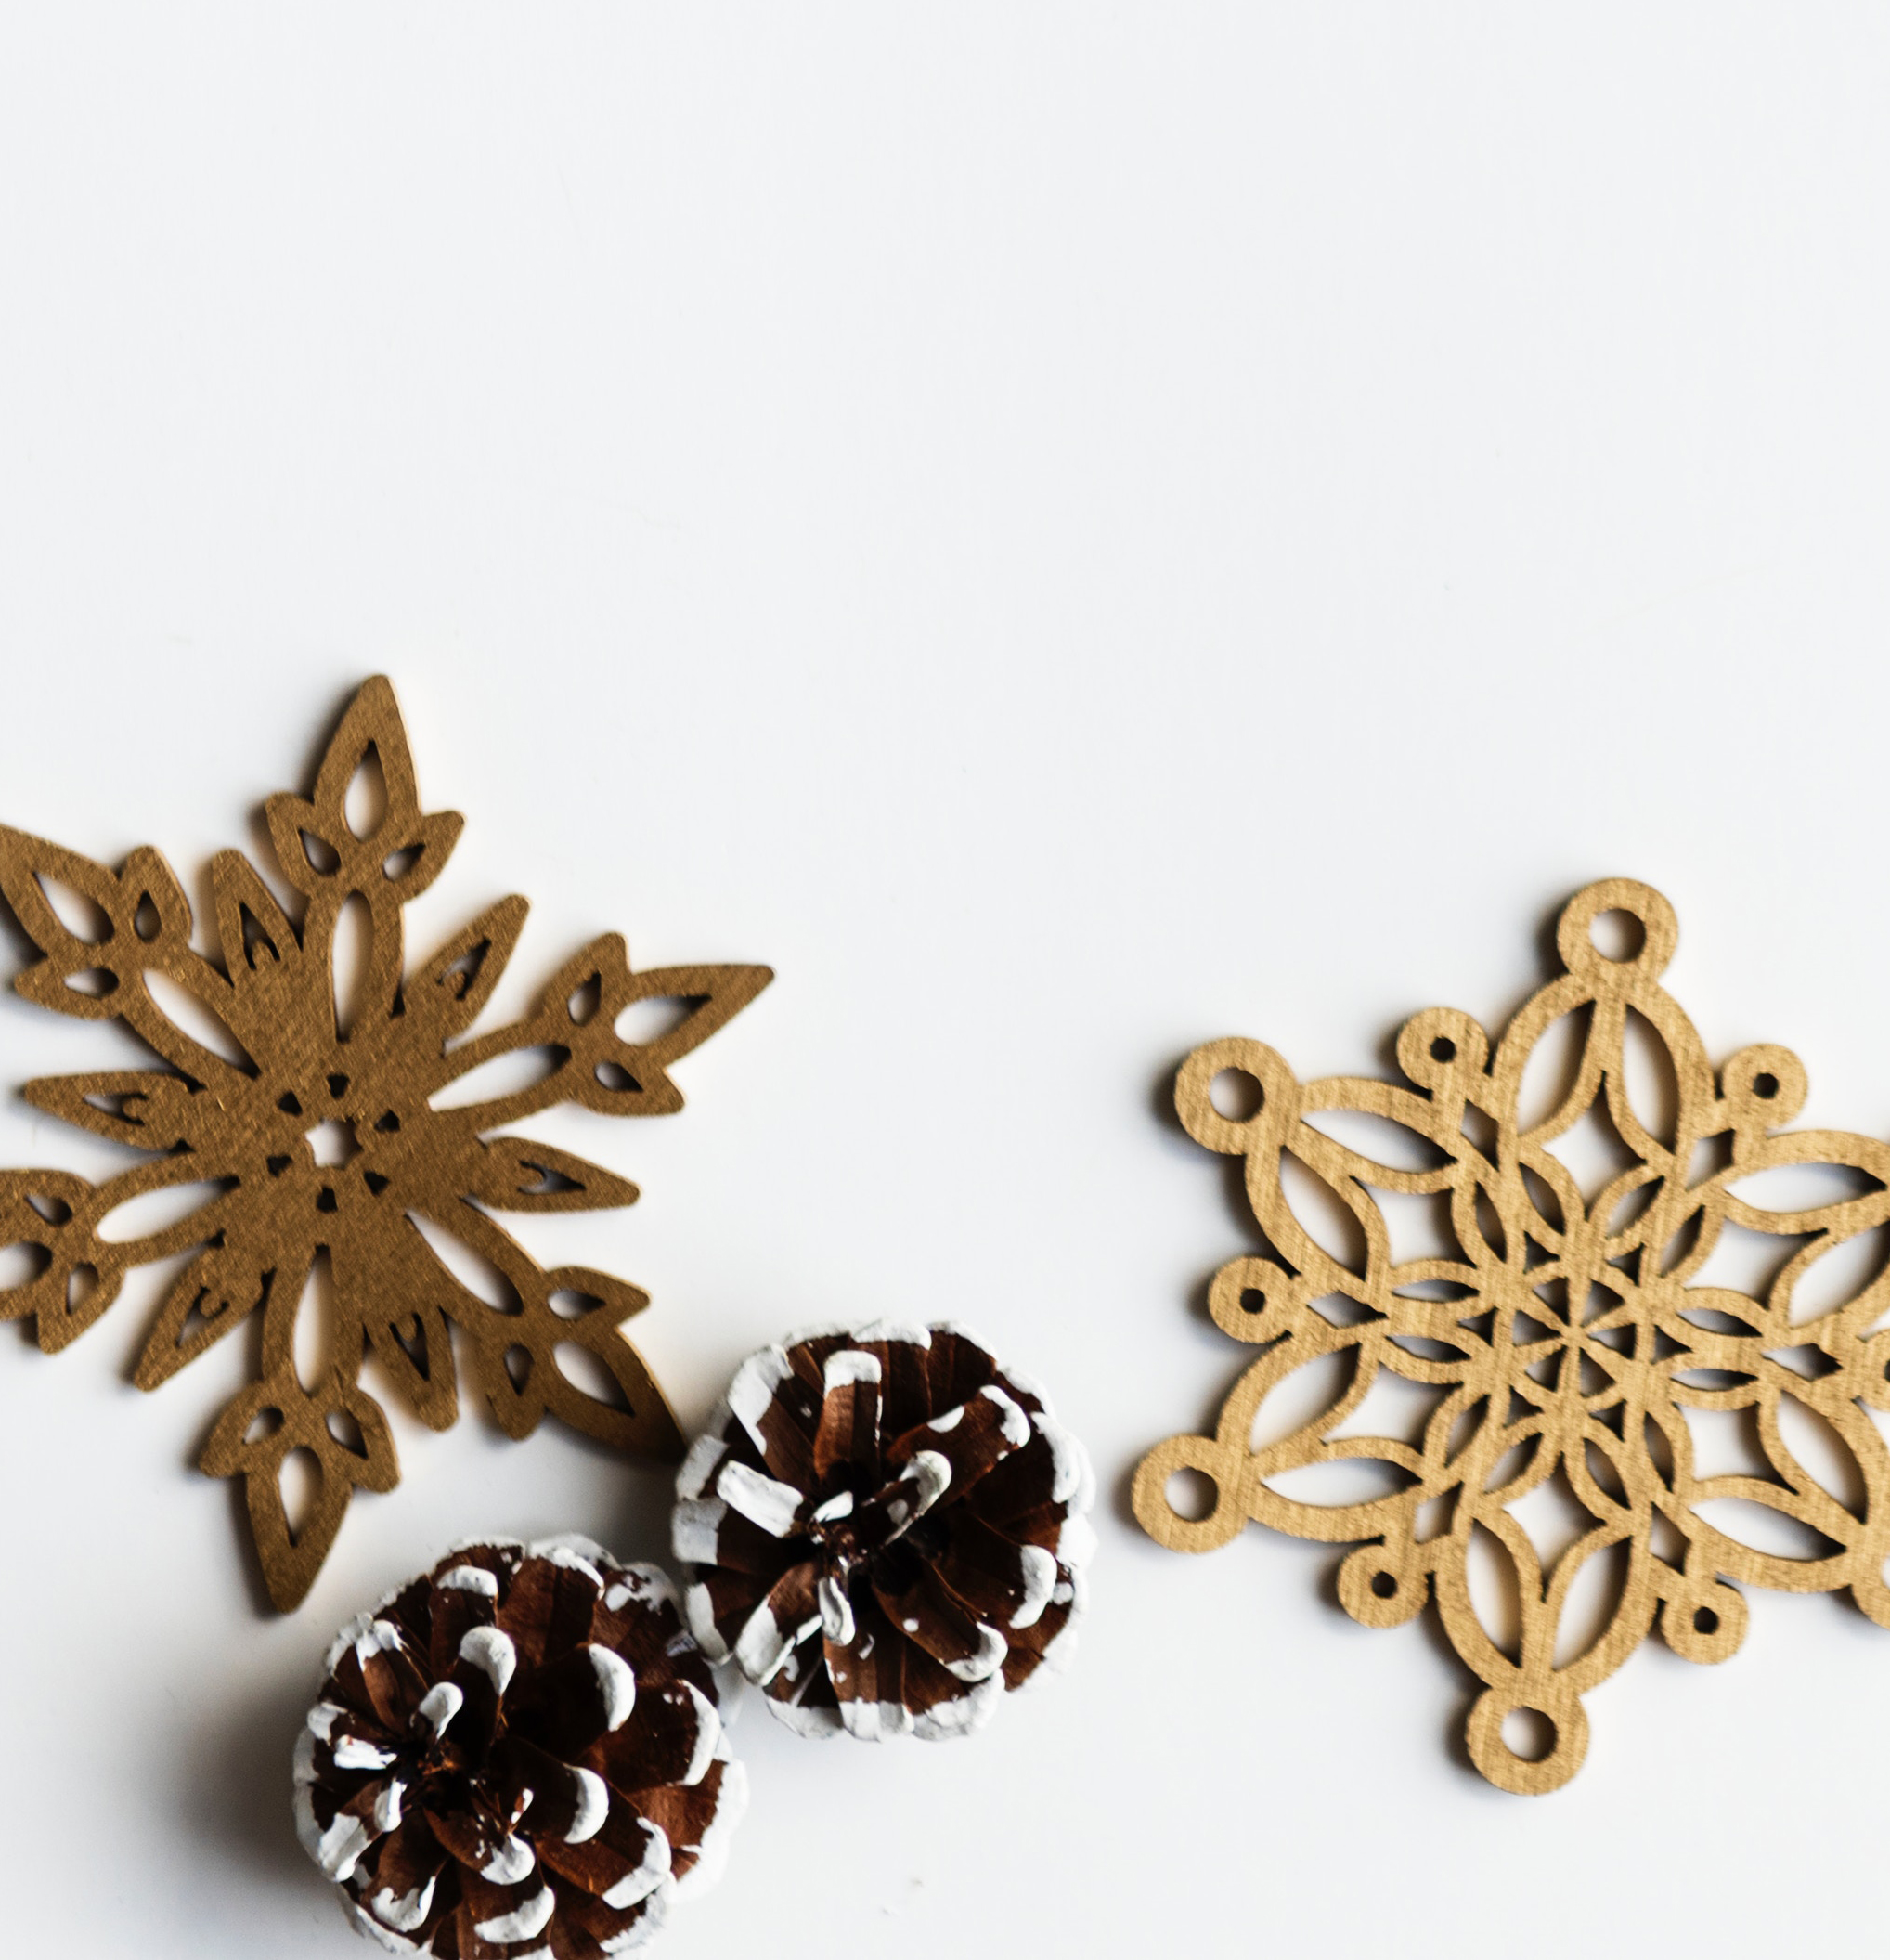 metal snowflakes and painted pine cones